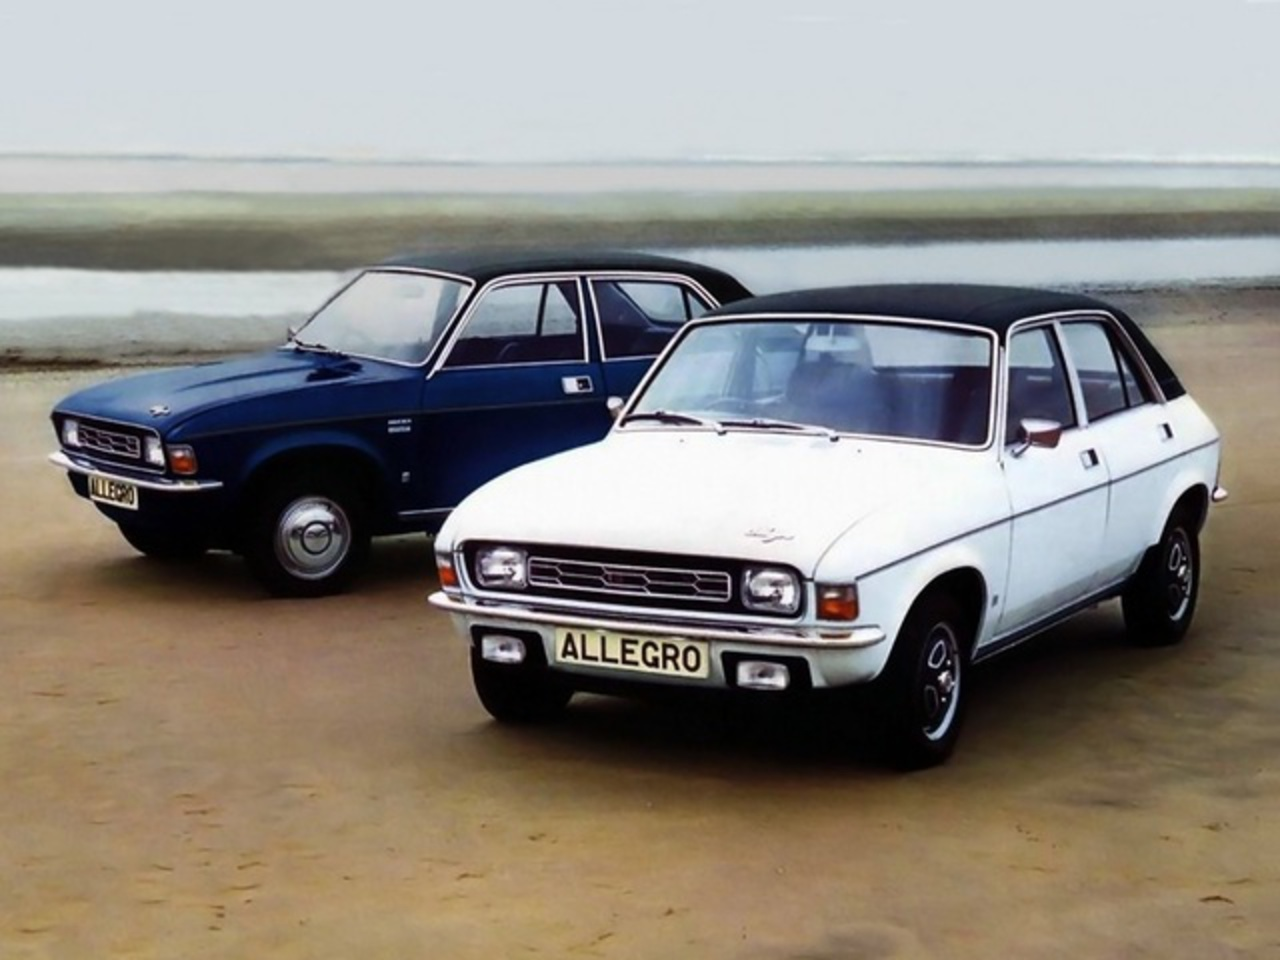 Archive : Motoring – Austin Allegro offers comfort and economy ...